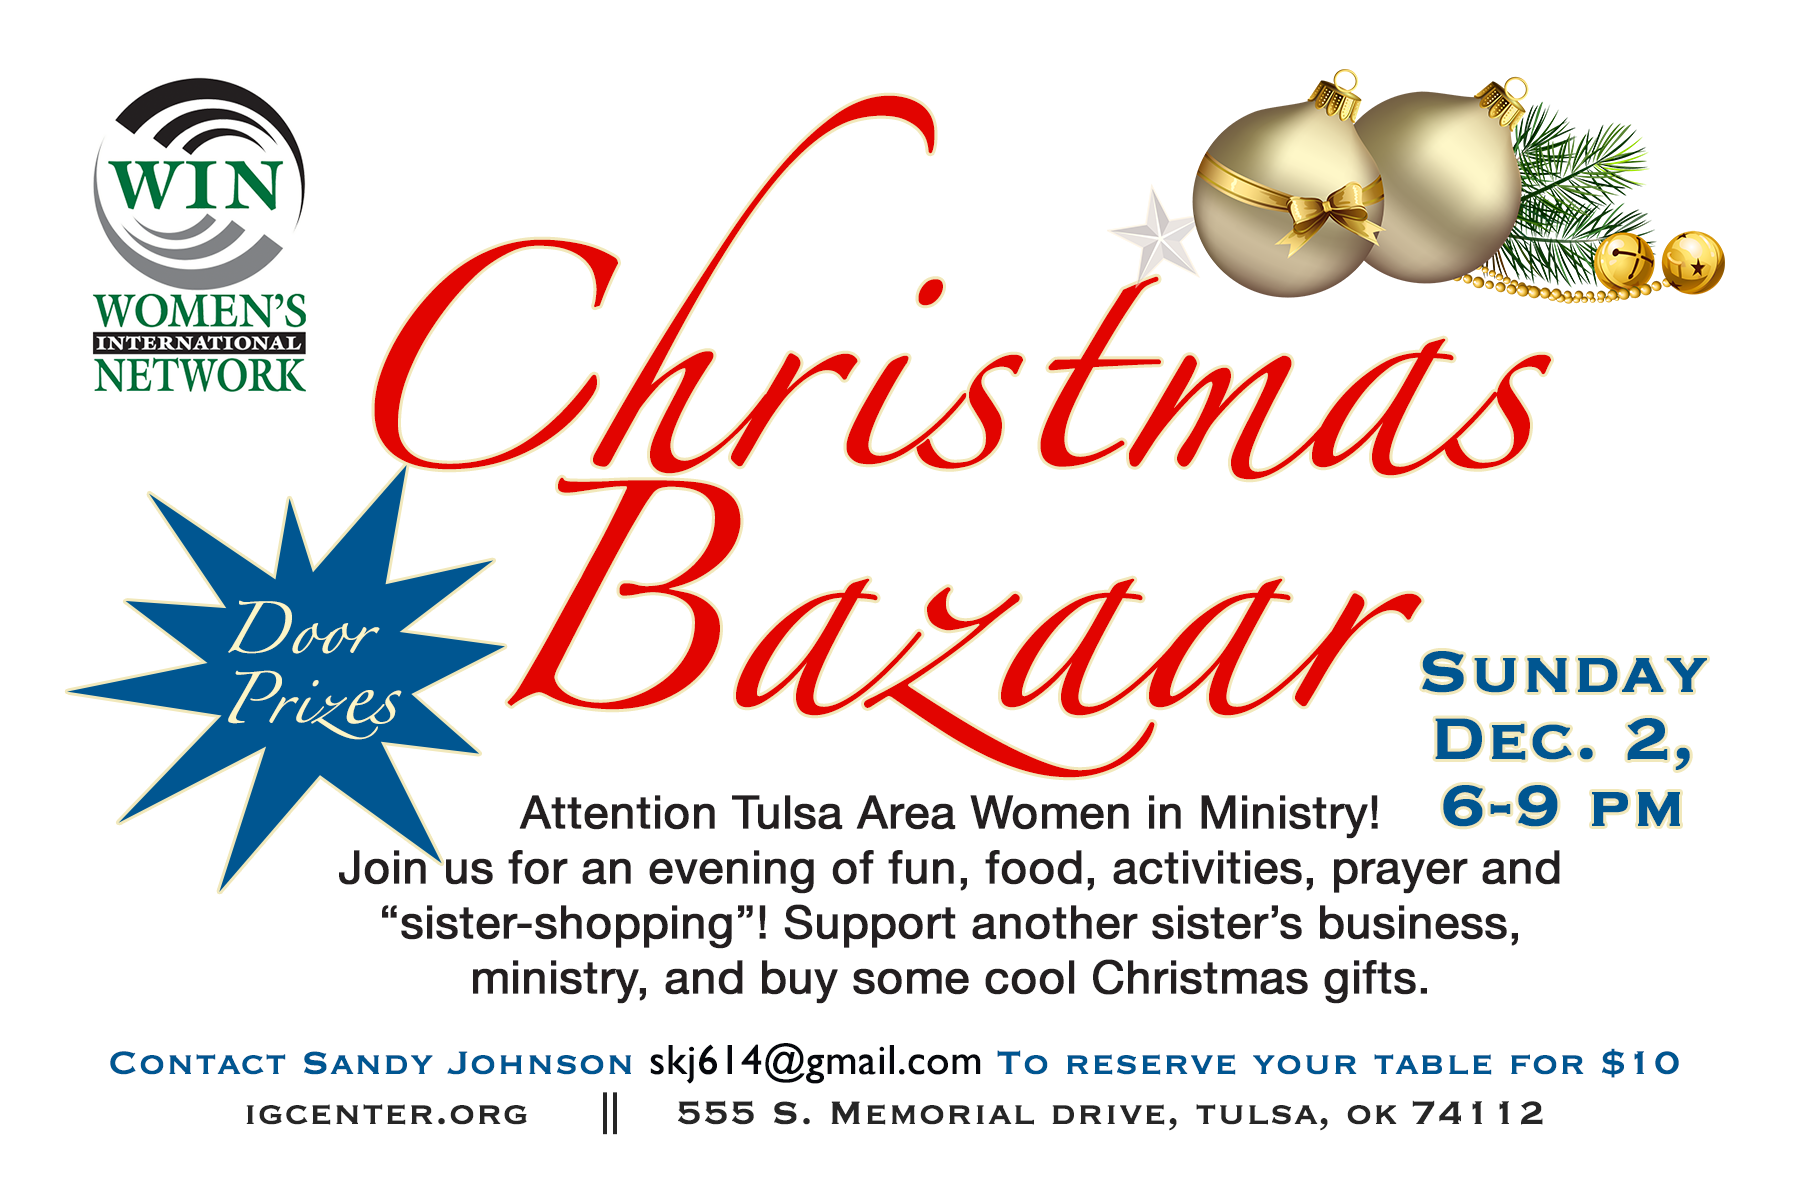 WIN_ChristmasBazaar (5).png